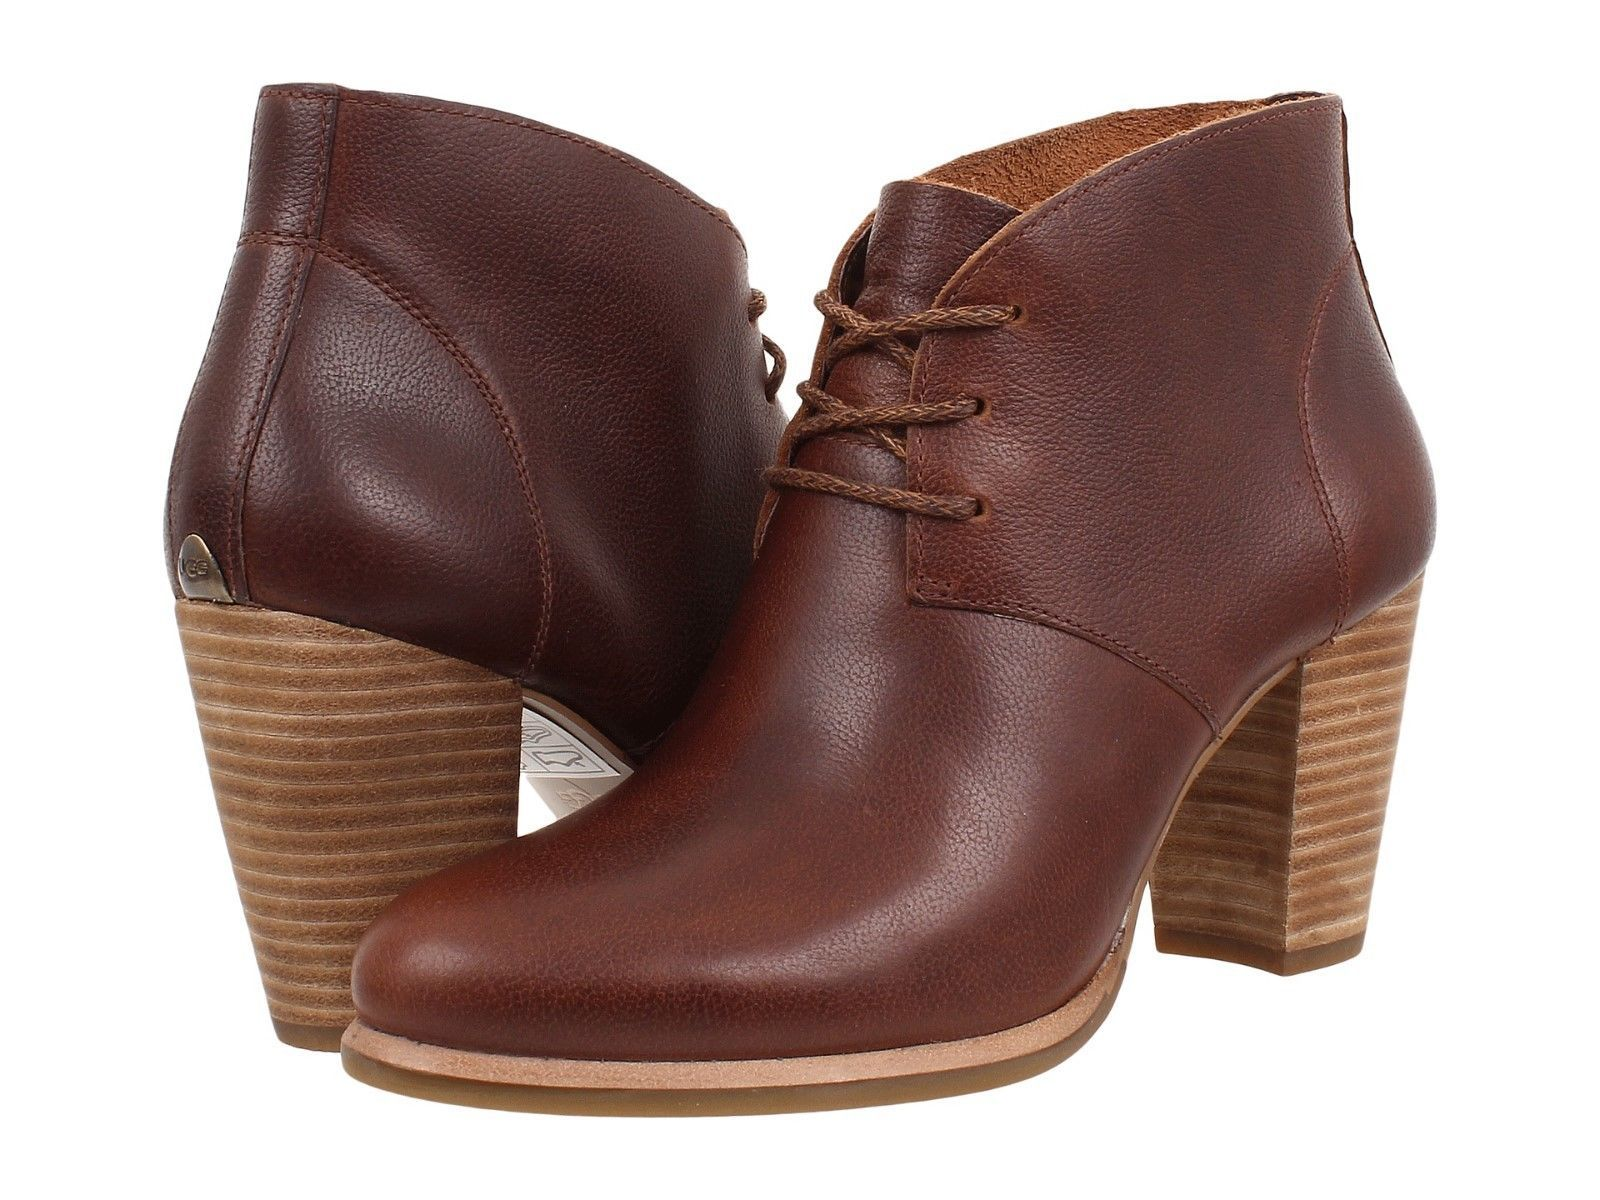 Womens Boots UGG Mackie Chestnut Leather